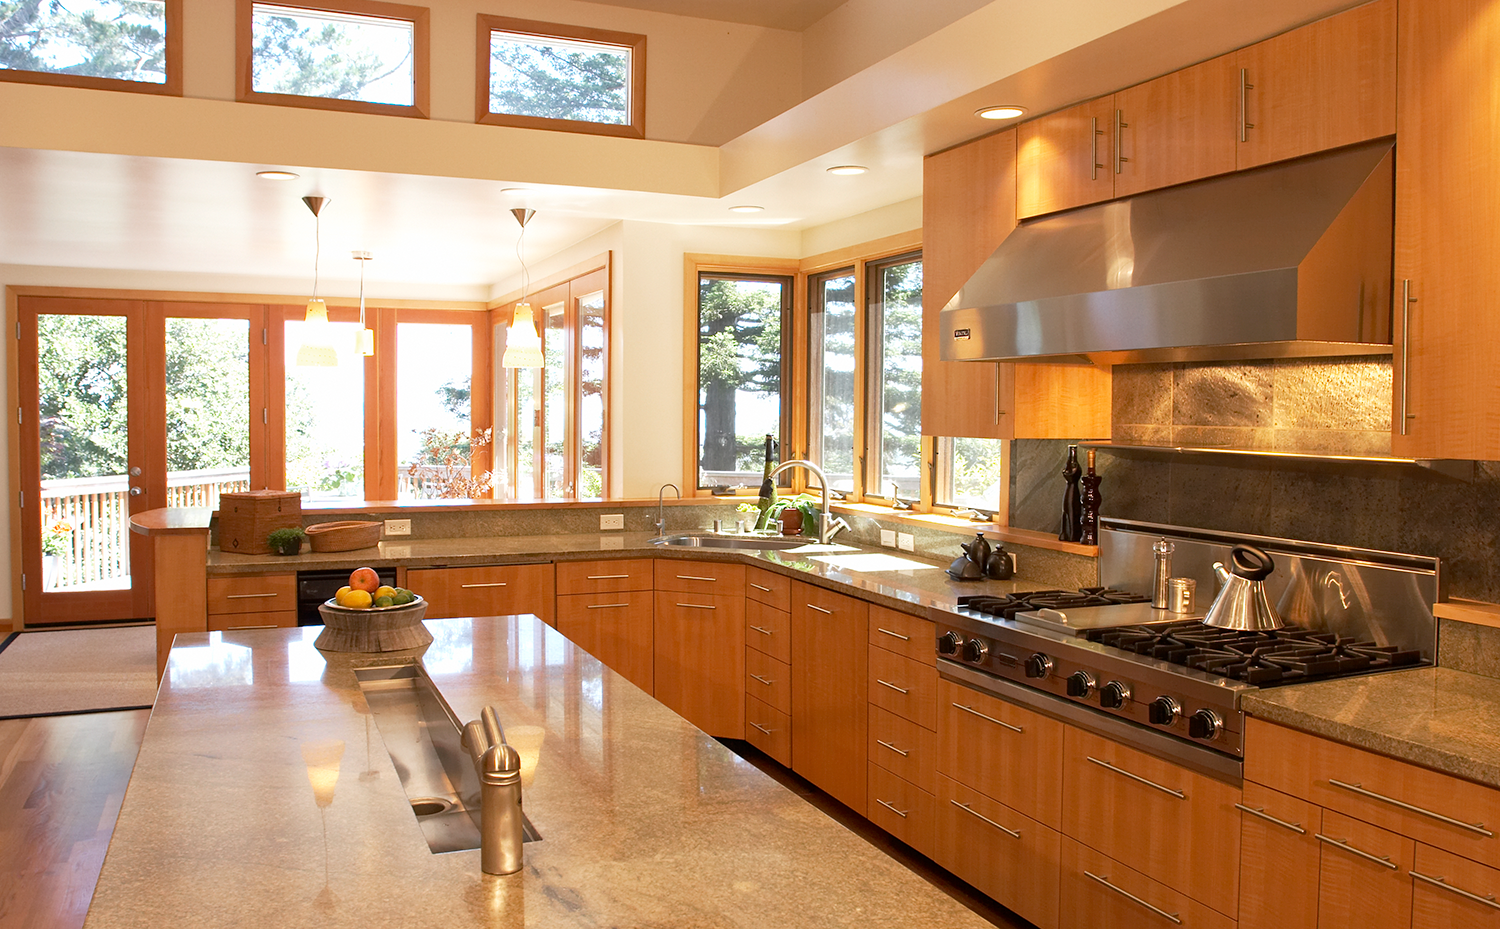 benefits of custom or prefab cabinets - Prefab Cabinets